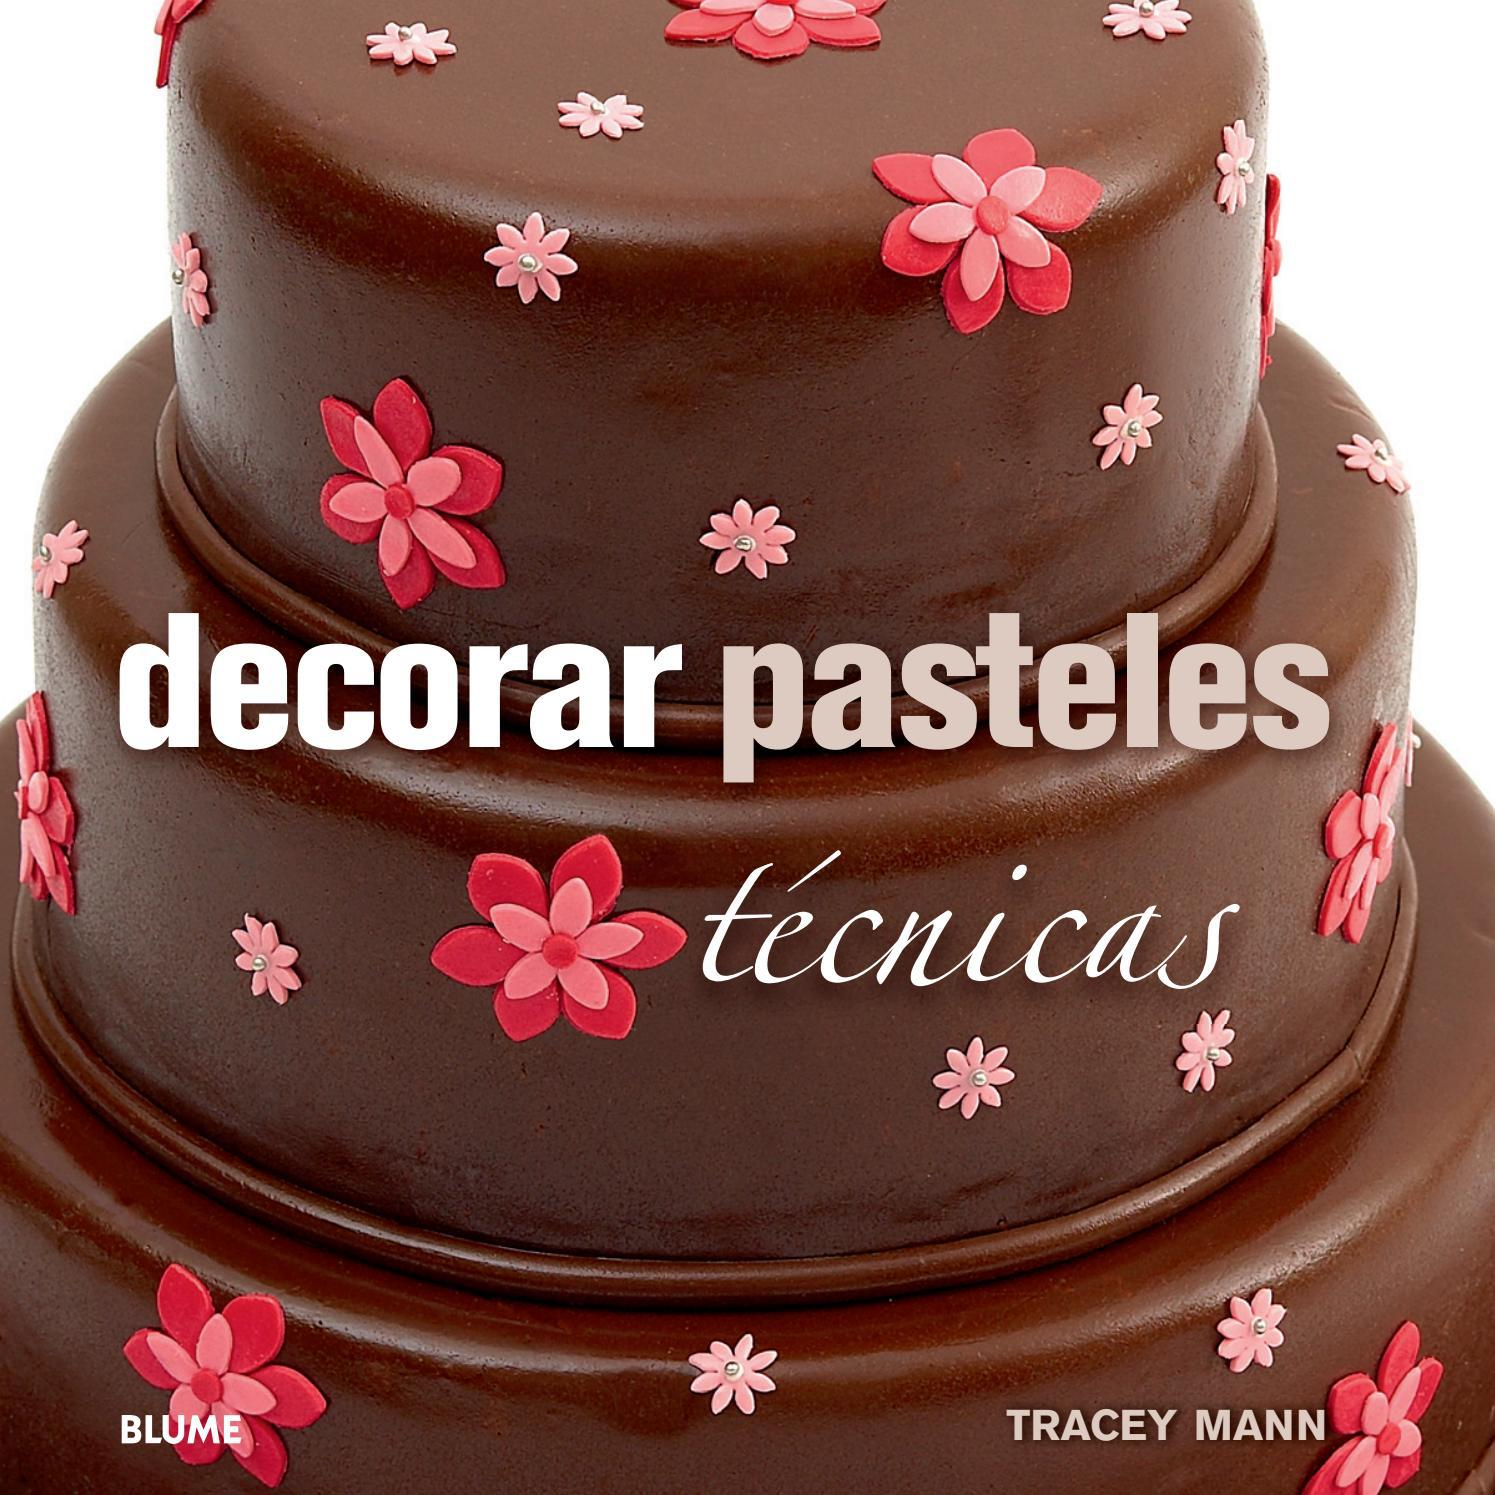 Decorar pasteles t cnicas by cristina rodriguez issuu for Imagenes de estanques decorados